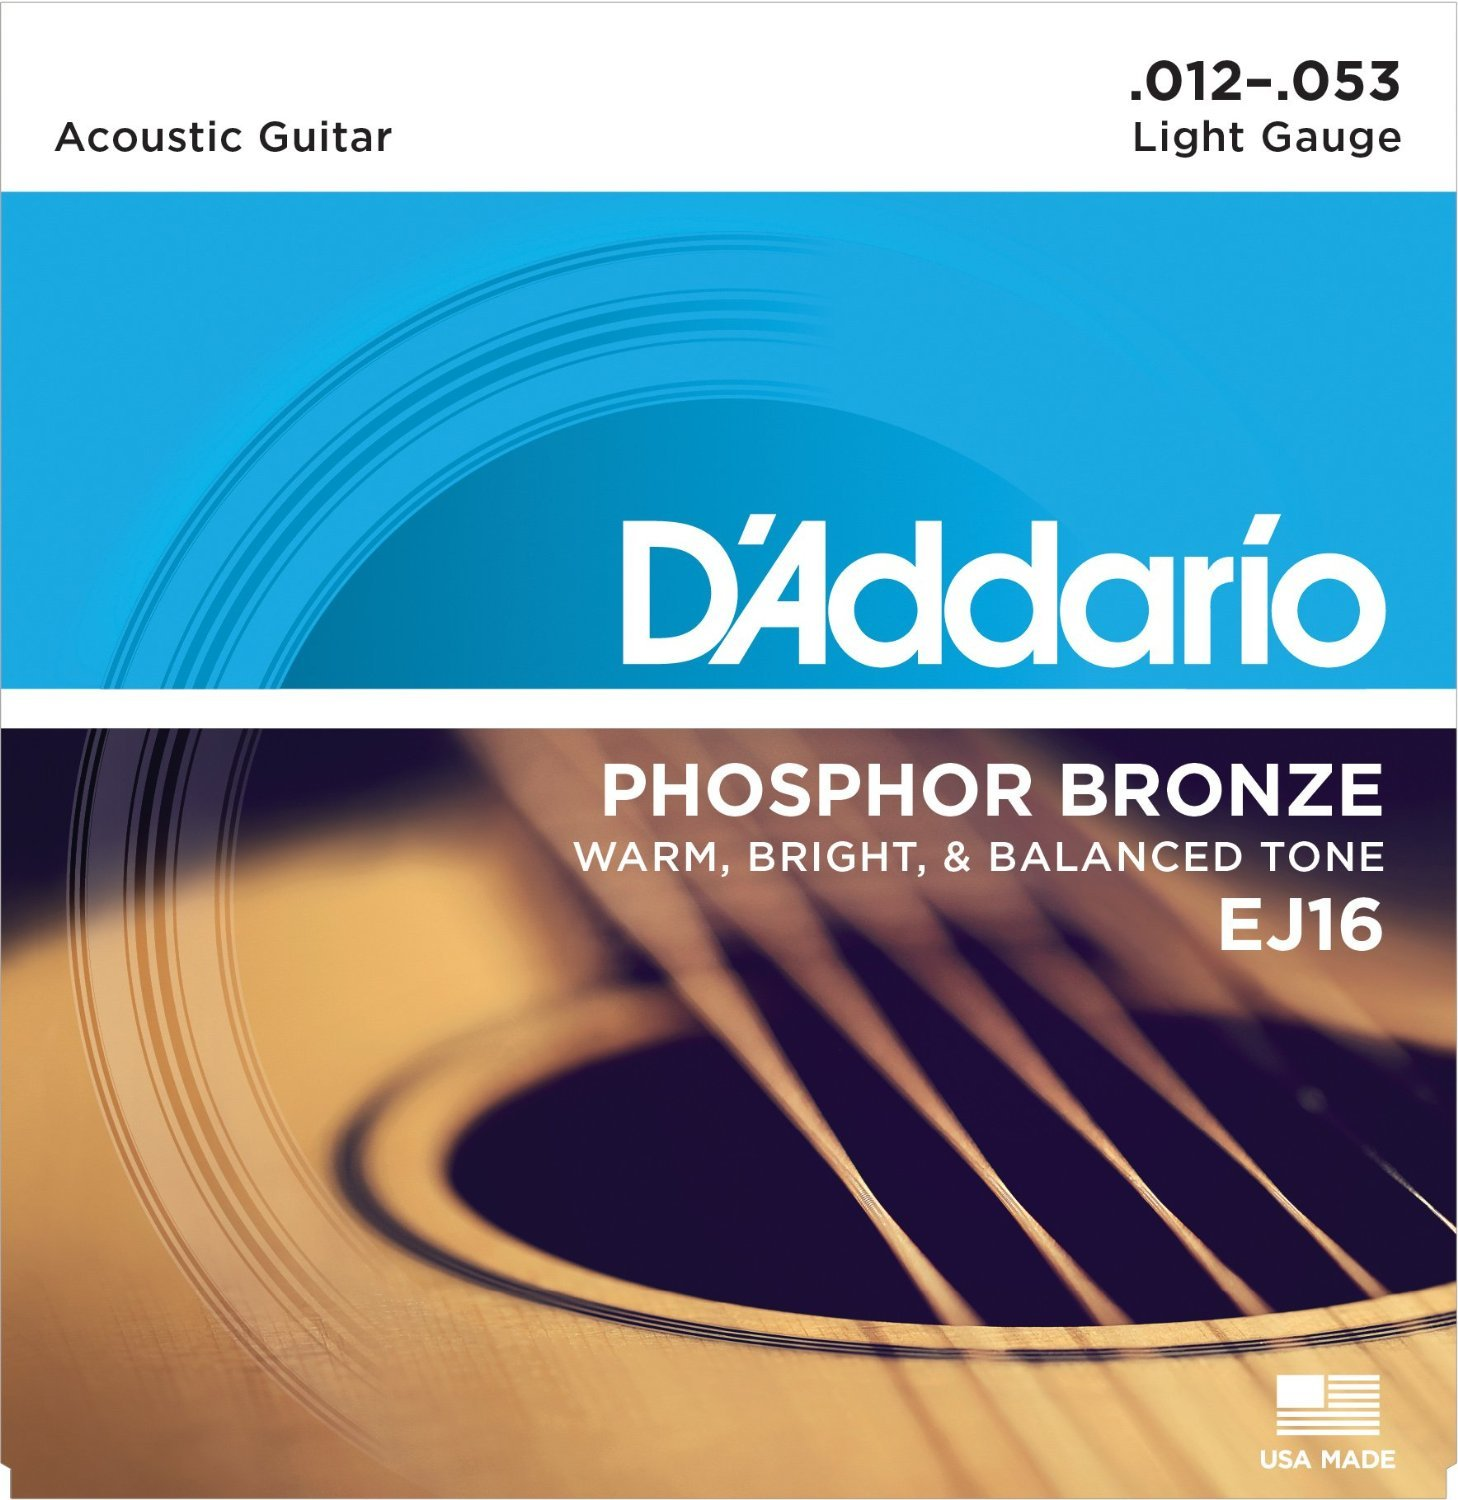 D'Addario EJ16 Phosphor Bronze Acoustic Guitar Strings Light